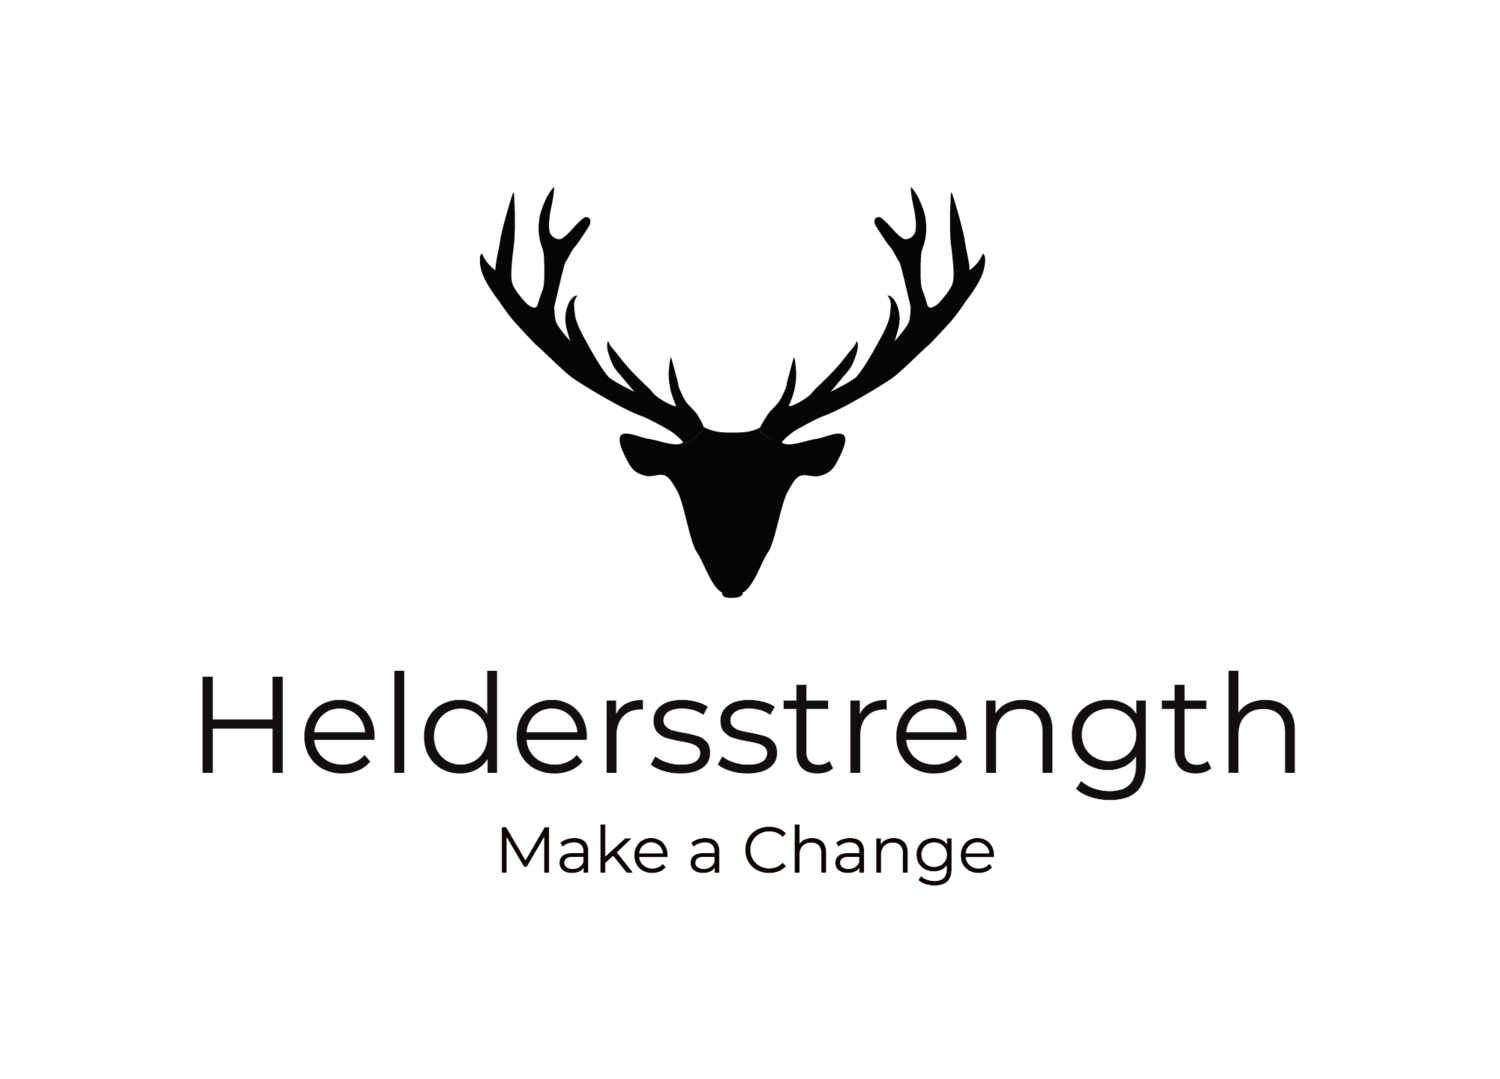 Heldersstrength